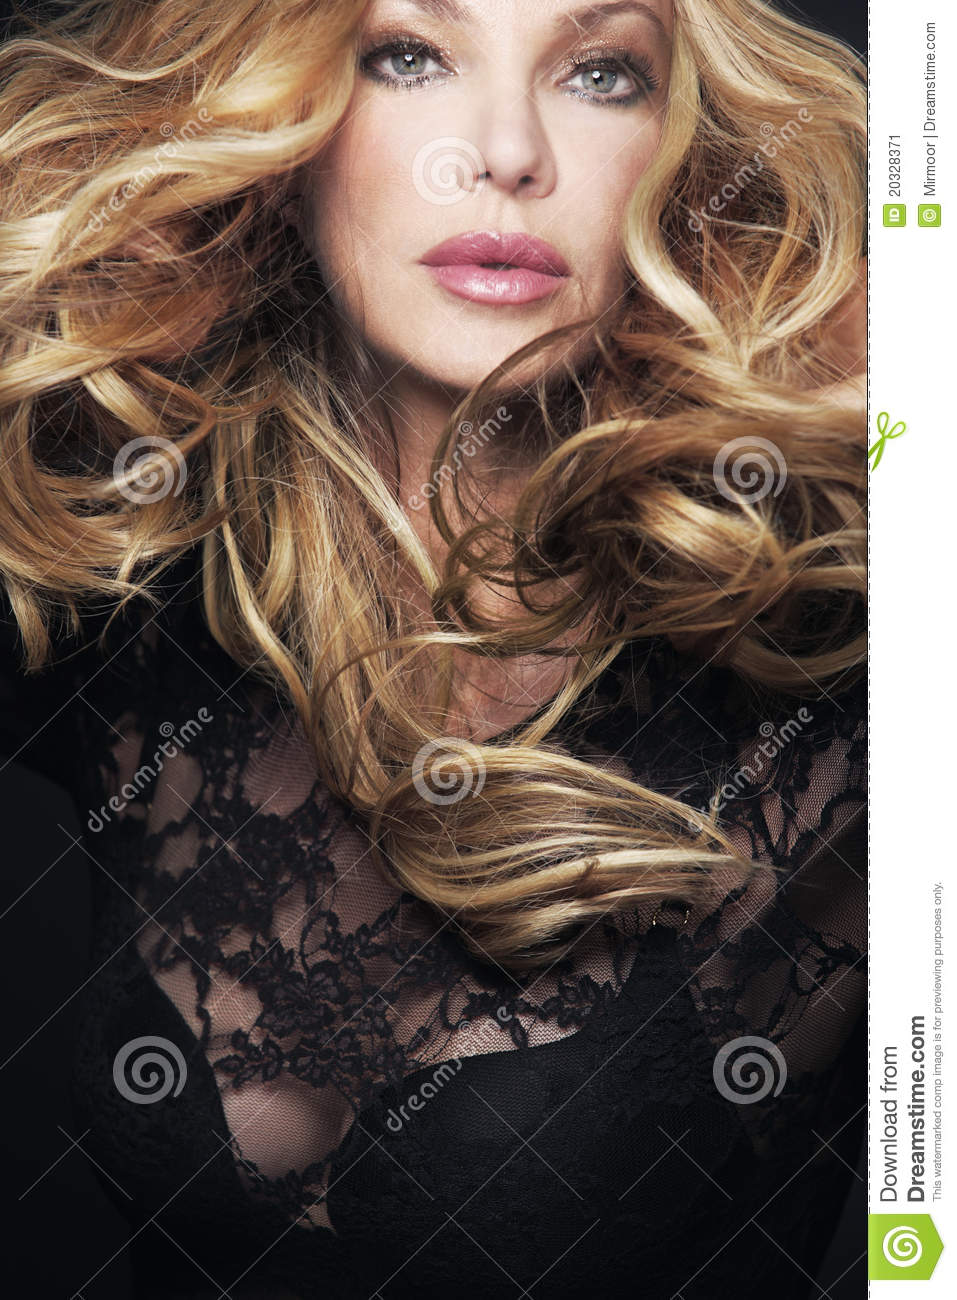 wavy hair images photos and pictures crystalgraphics beautiful woman long curly hair blowing the ...